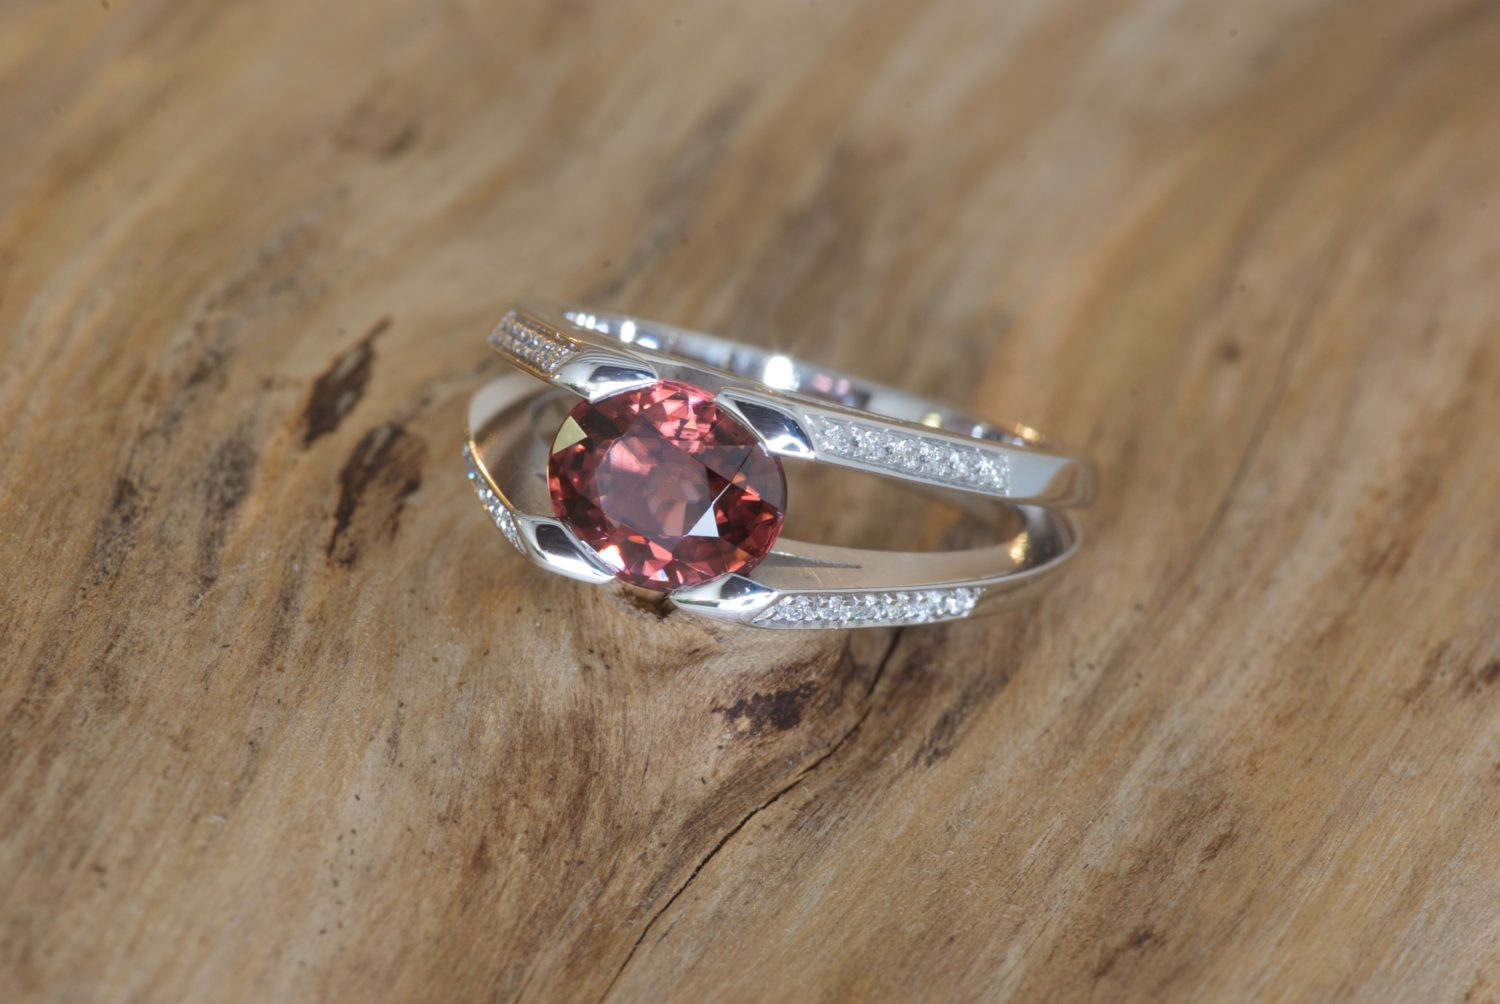 Bague Massada. Or gris, zircon rouge et diamants.